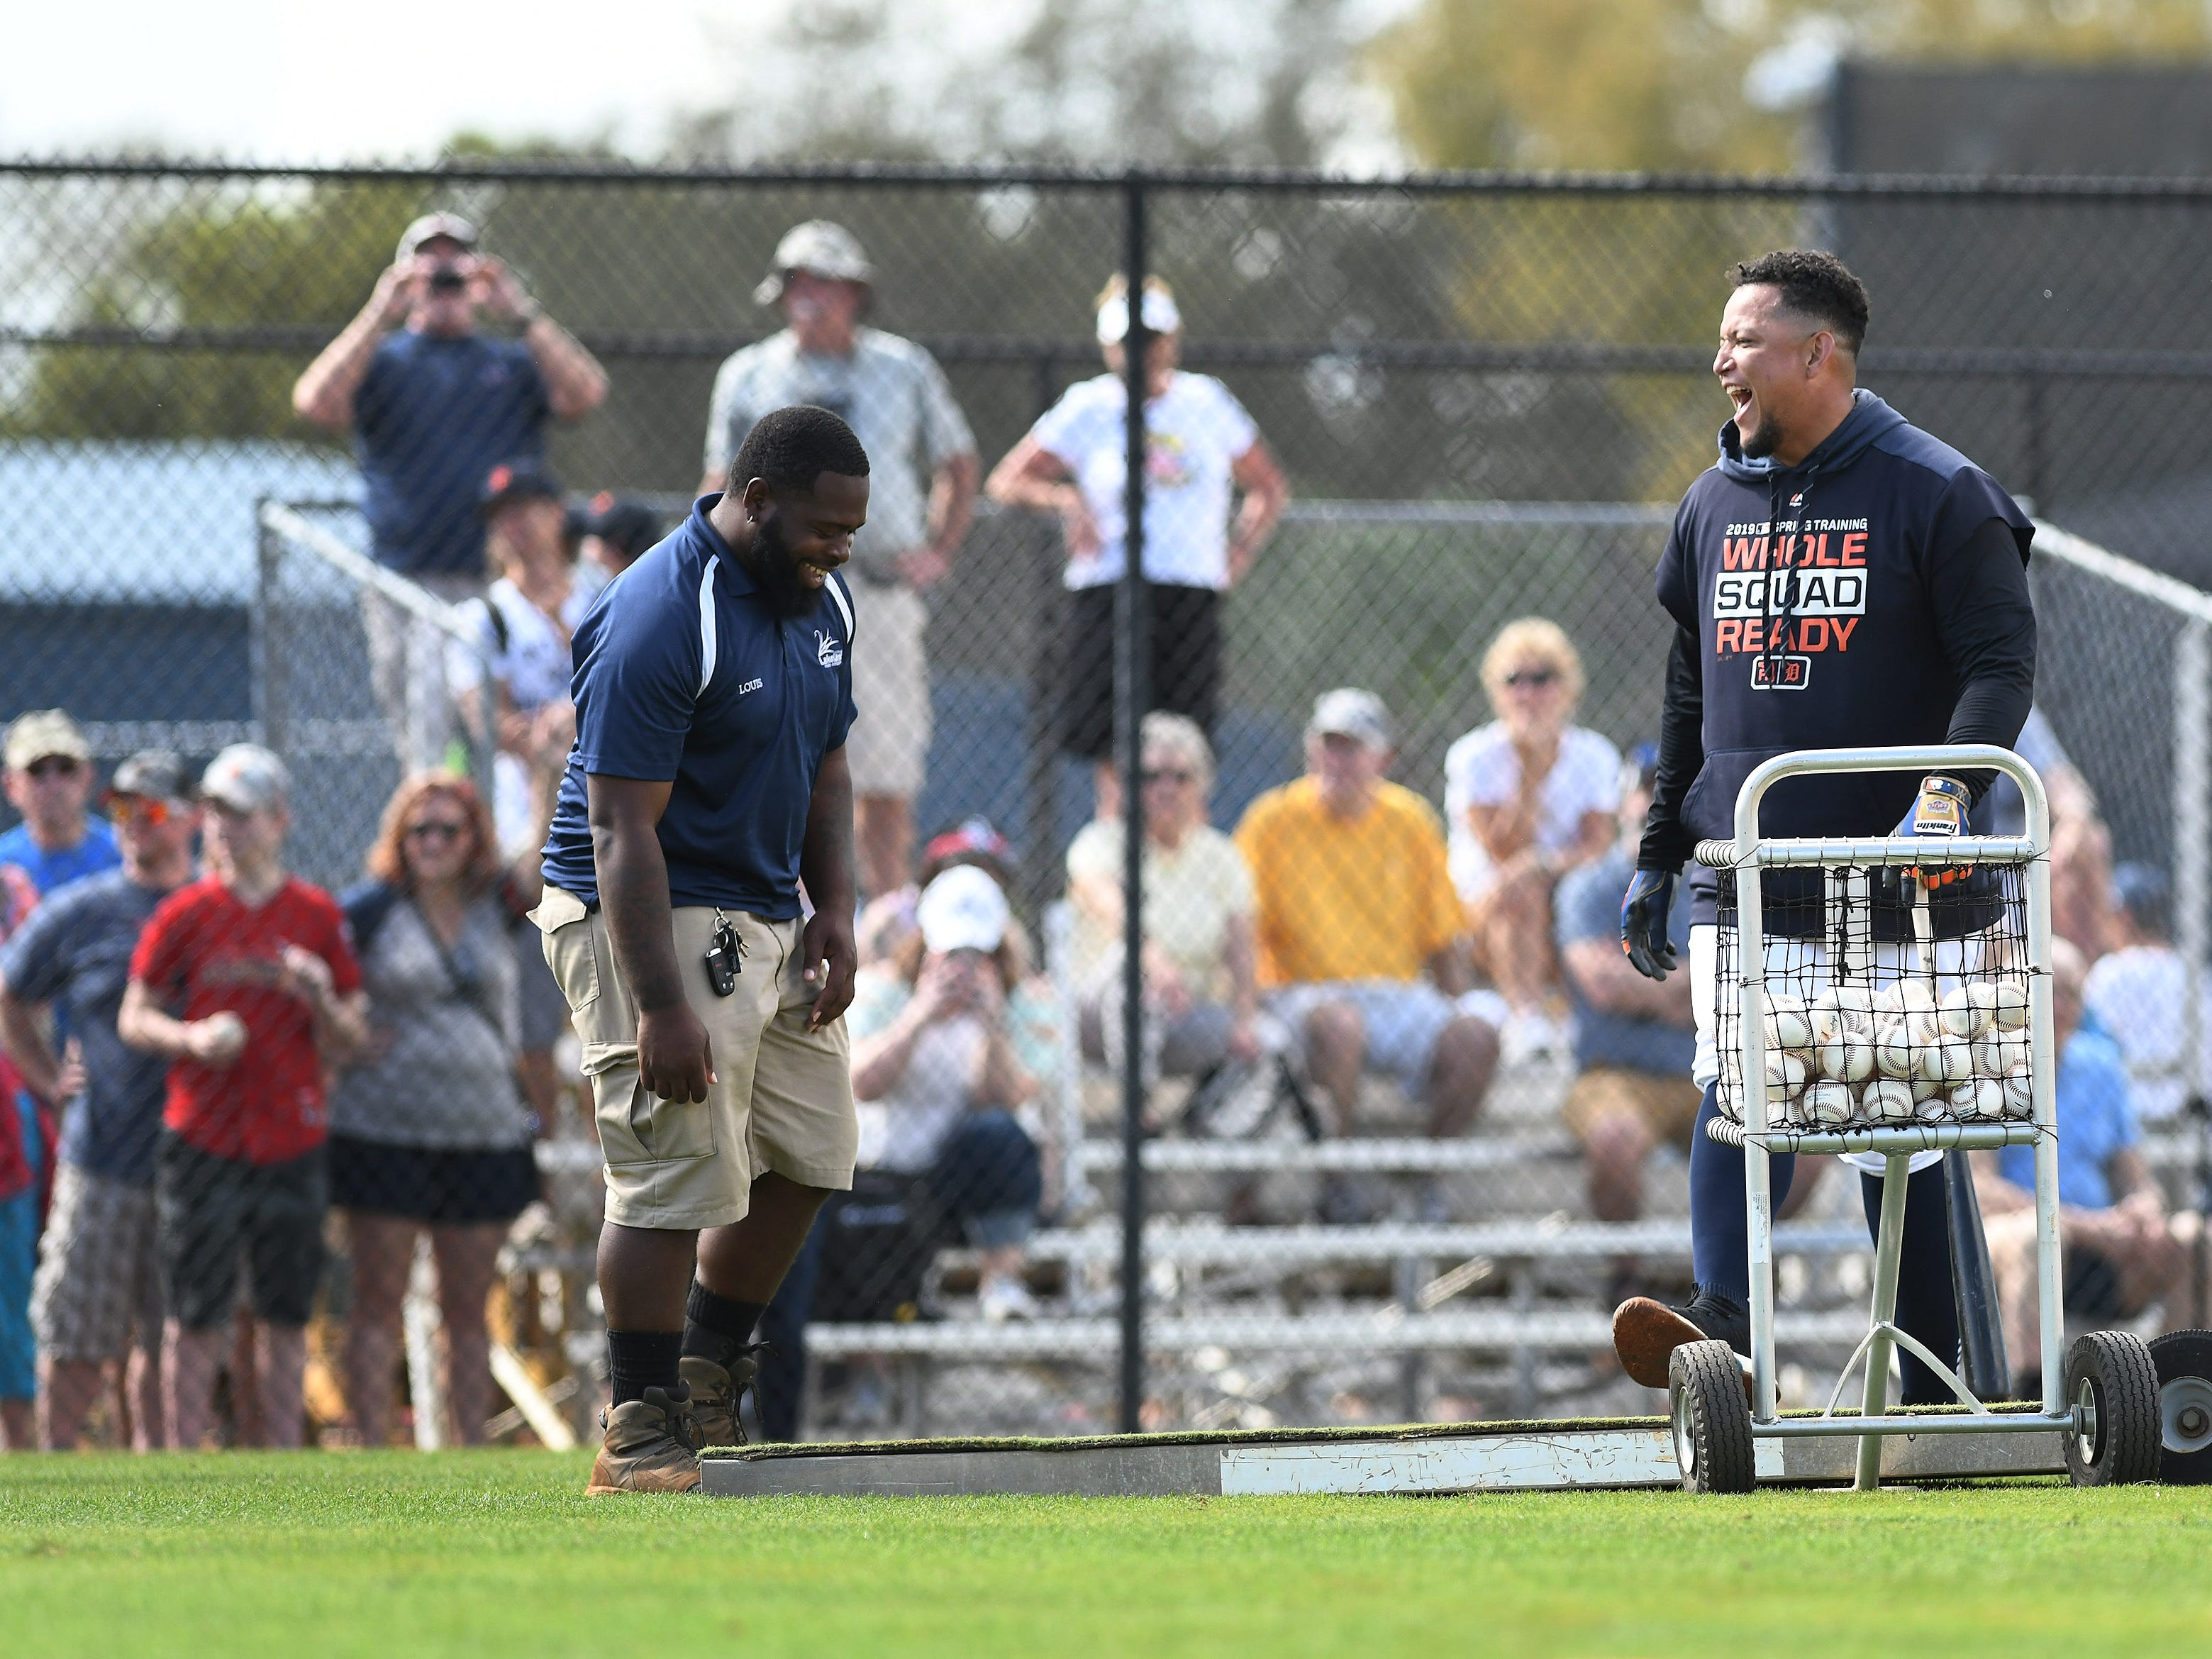 Ground crew member Louis Matos, left, says something to make Tigers slugger Miguel Cabrera laugh while the field is changed over for the next round of batting practice.